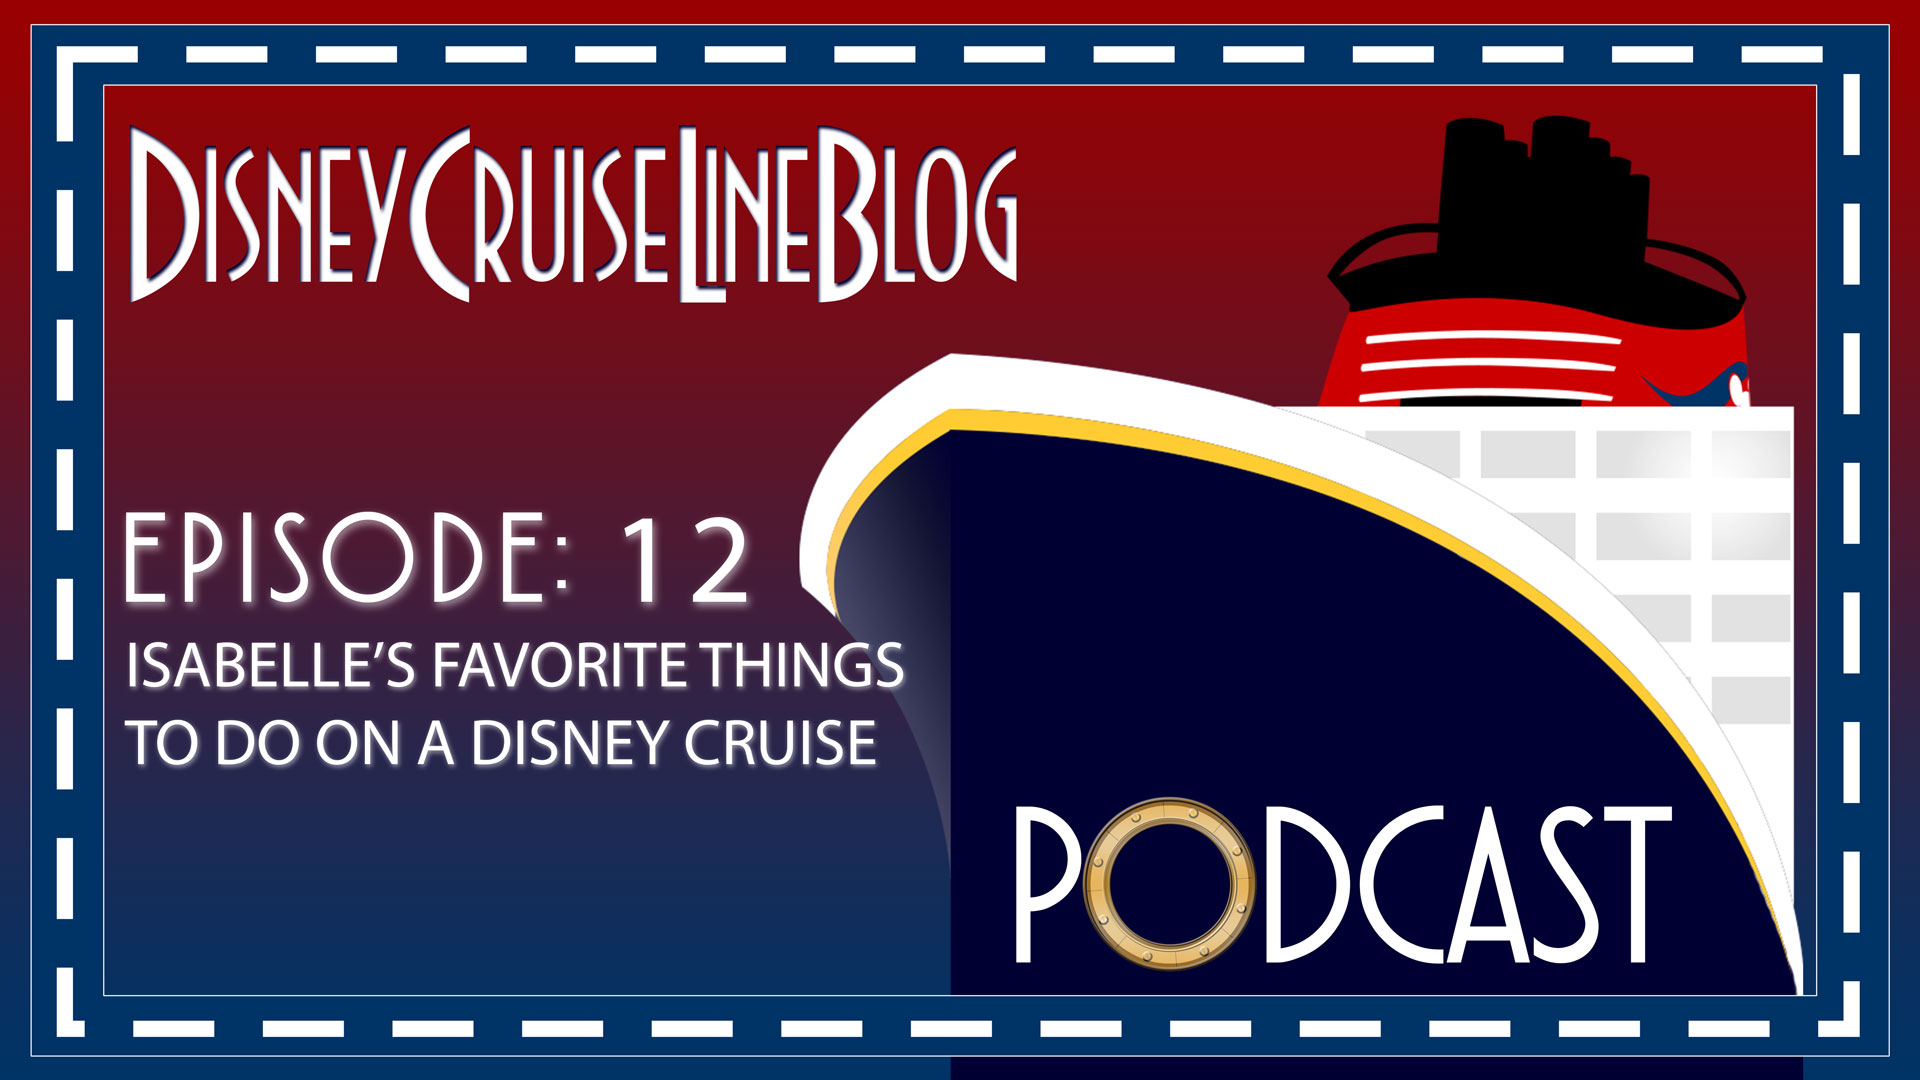 DCL Blog Podcast Episode 12 Isabelles Favorite Things To Do On A Disney Cruise